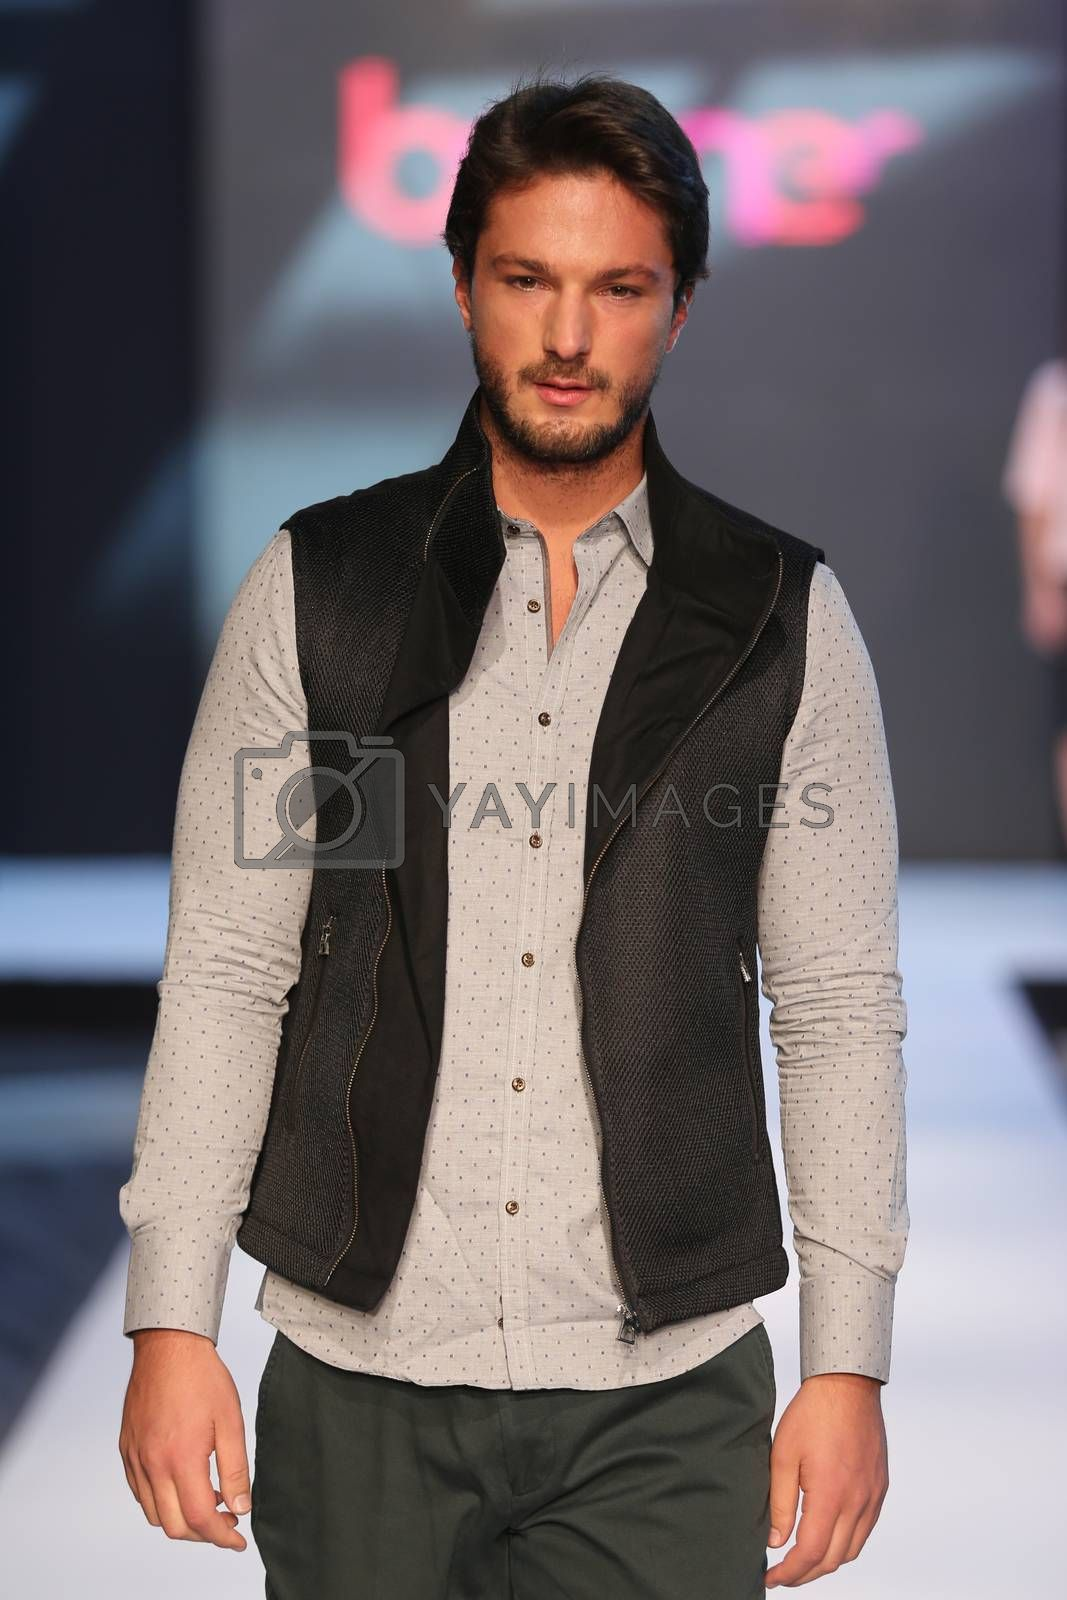 ISTANBUL, TURKEY - OCTOBER 10, 2015: A model showcases one of the latest creations of Boyner in Forum Fashion Week